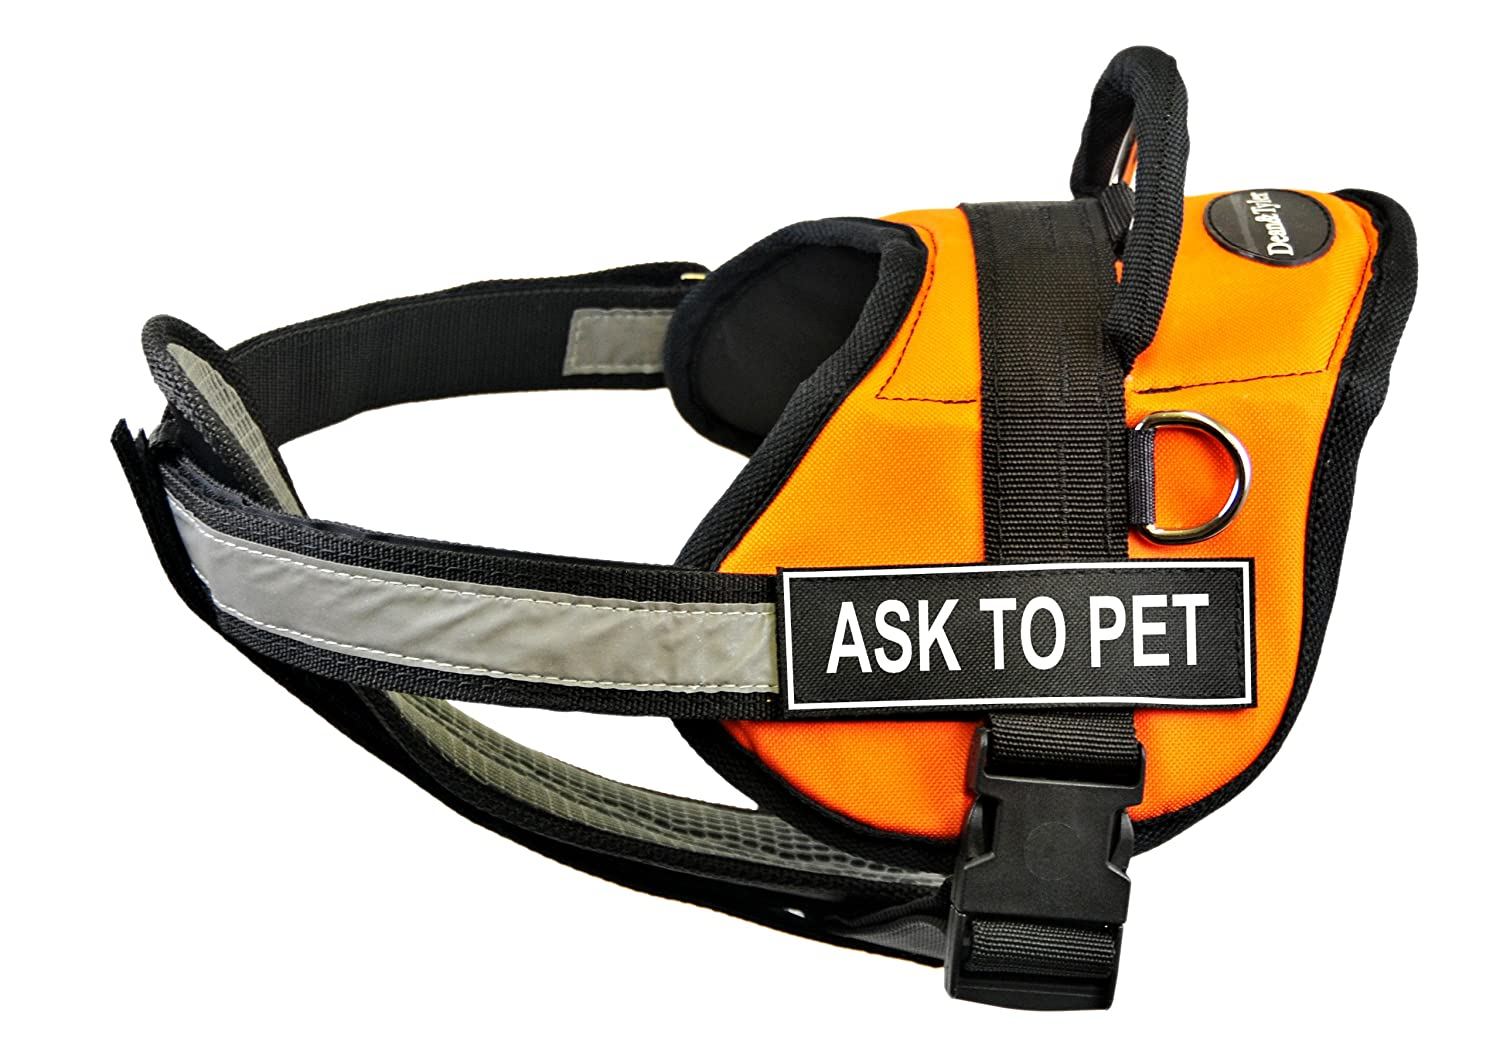 Dean & Tyler 25-Inch to 34-Inch Ask to Pet Dog Harness with Padded Reflective Chest Straps, Small, orange Black